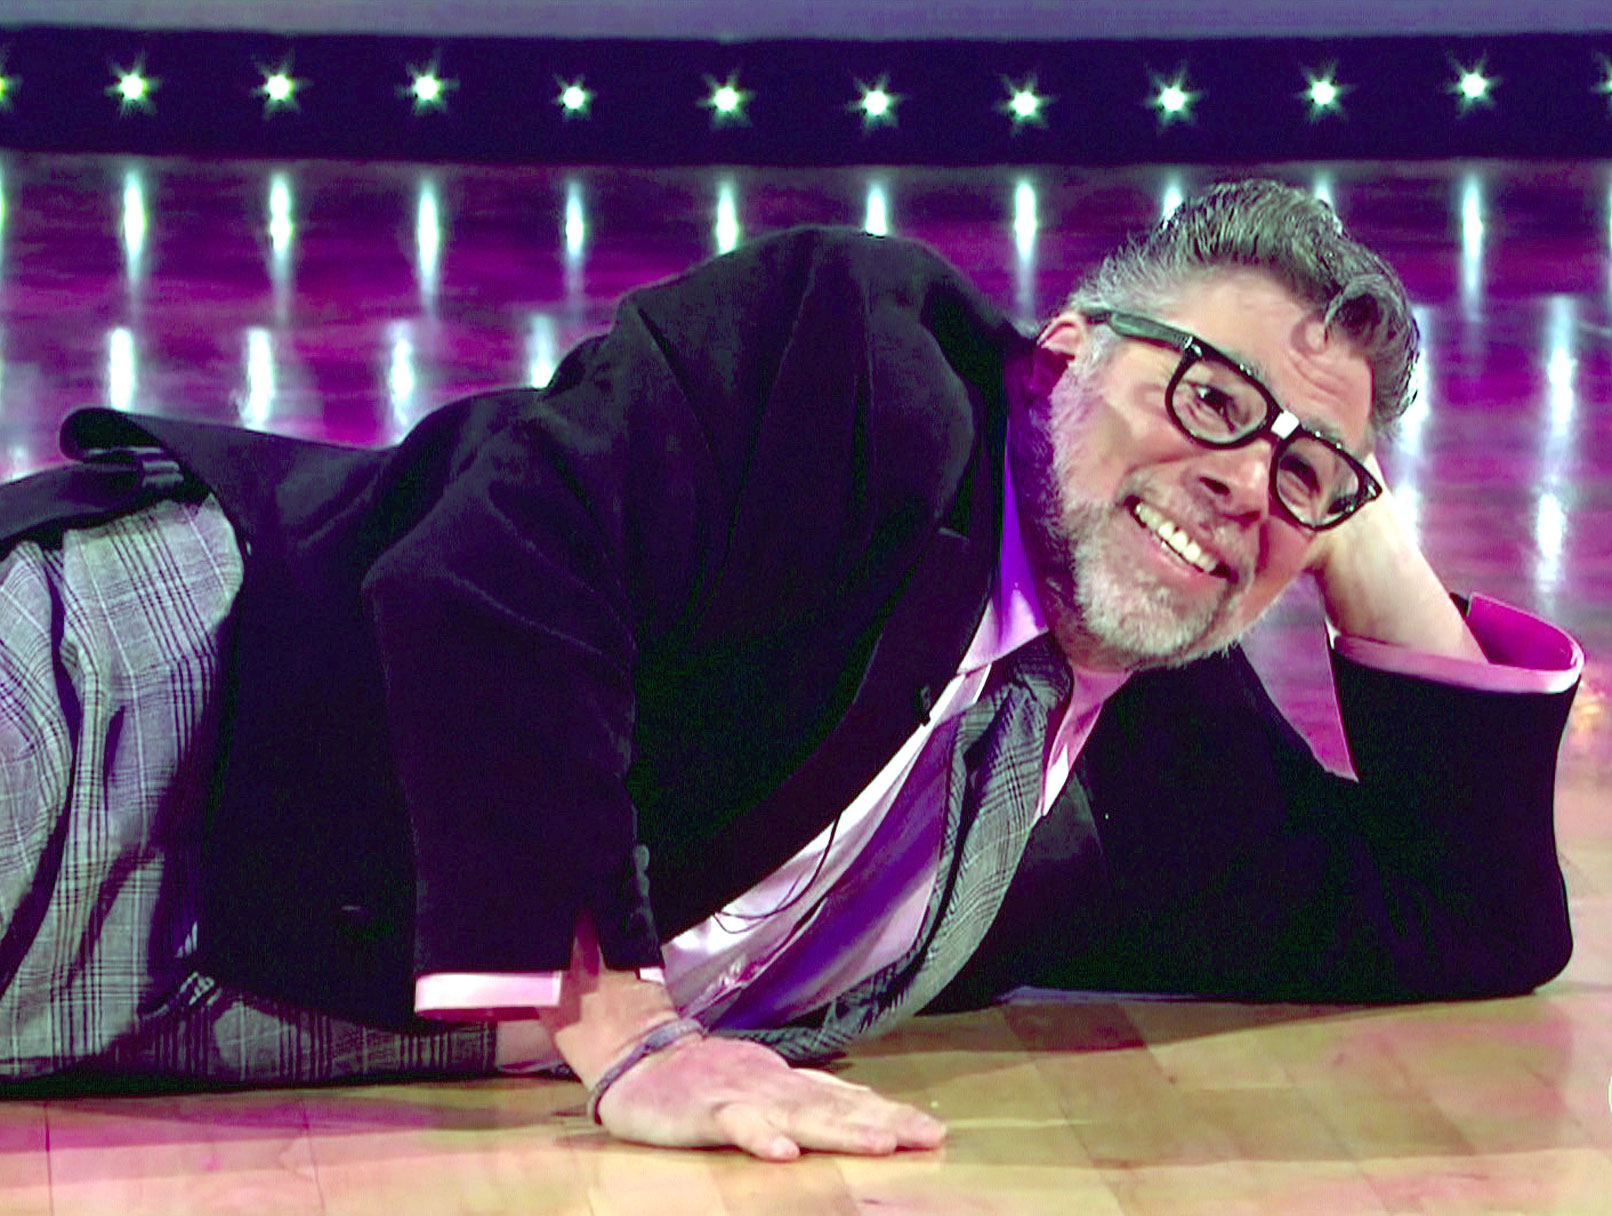 'Dancing with the Stars': Woz's Injury Worsens